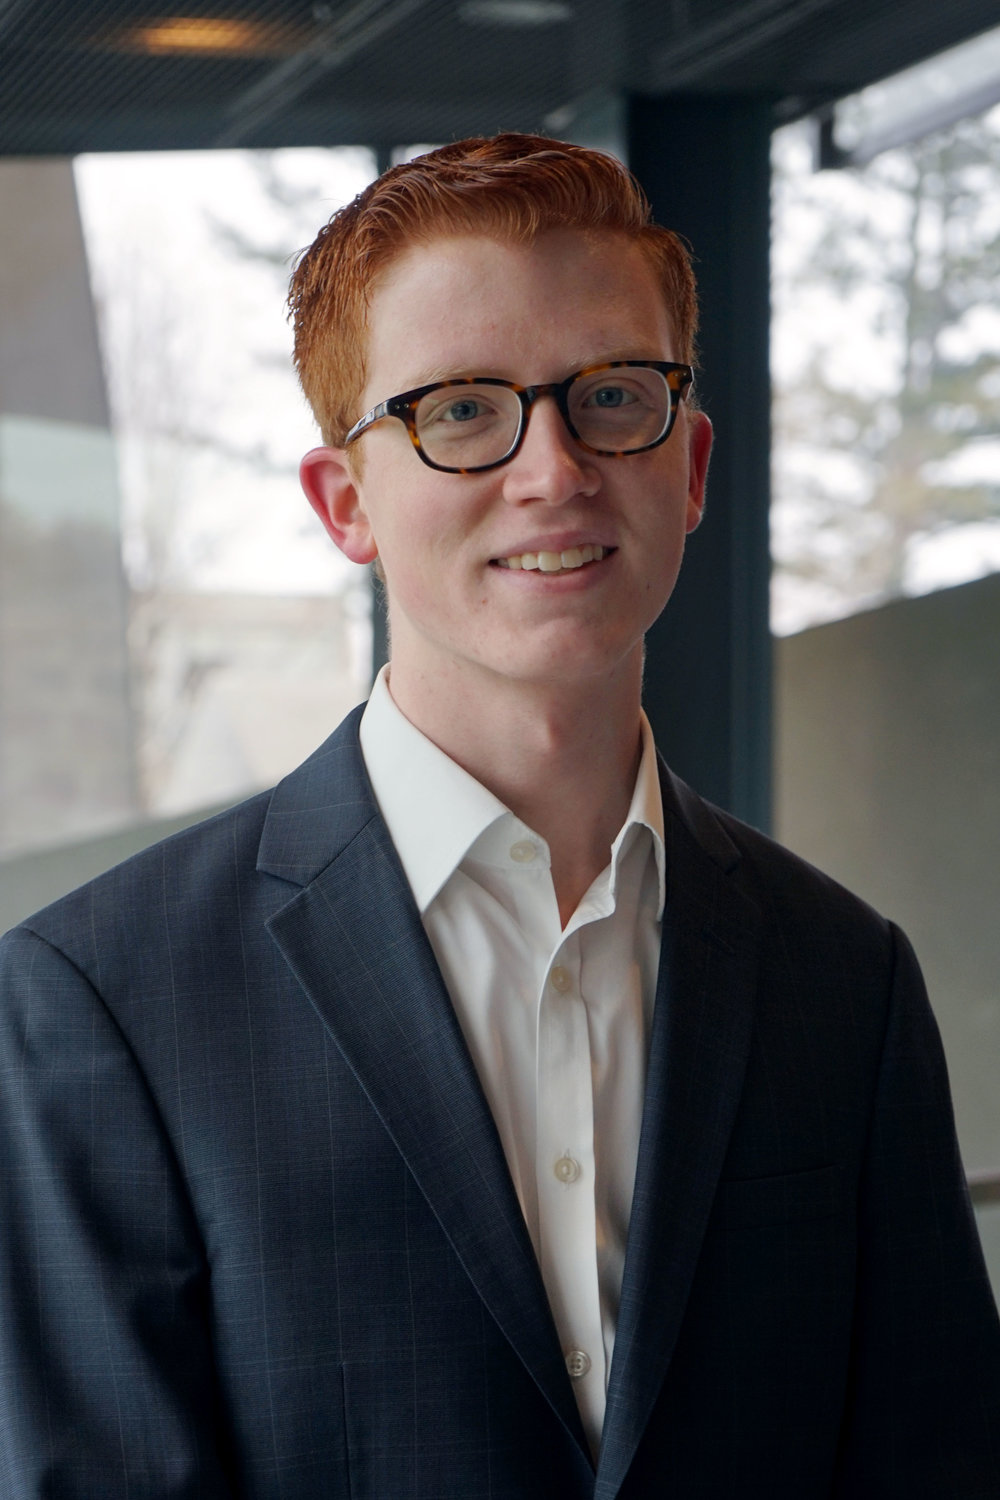 Matthew Saxton | Project Manager    Industrial and Labor Relations, 2020    Business Management Summer Analyst at BNP Paribas    AKPsi, Hotel Ezra Cornell, CU Nooz, Peer Review Board, ILR Research Assistant